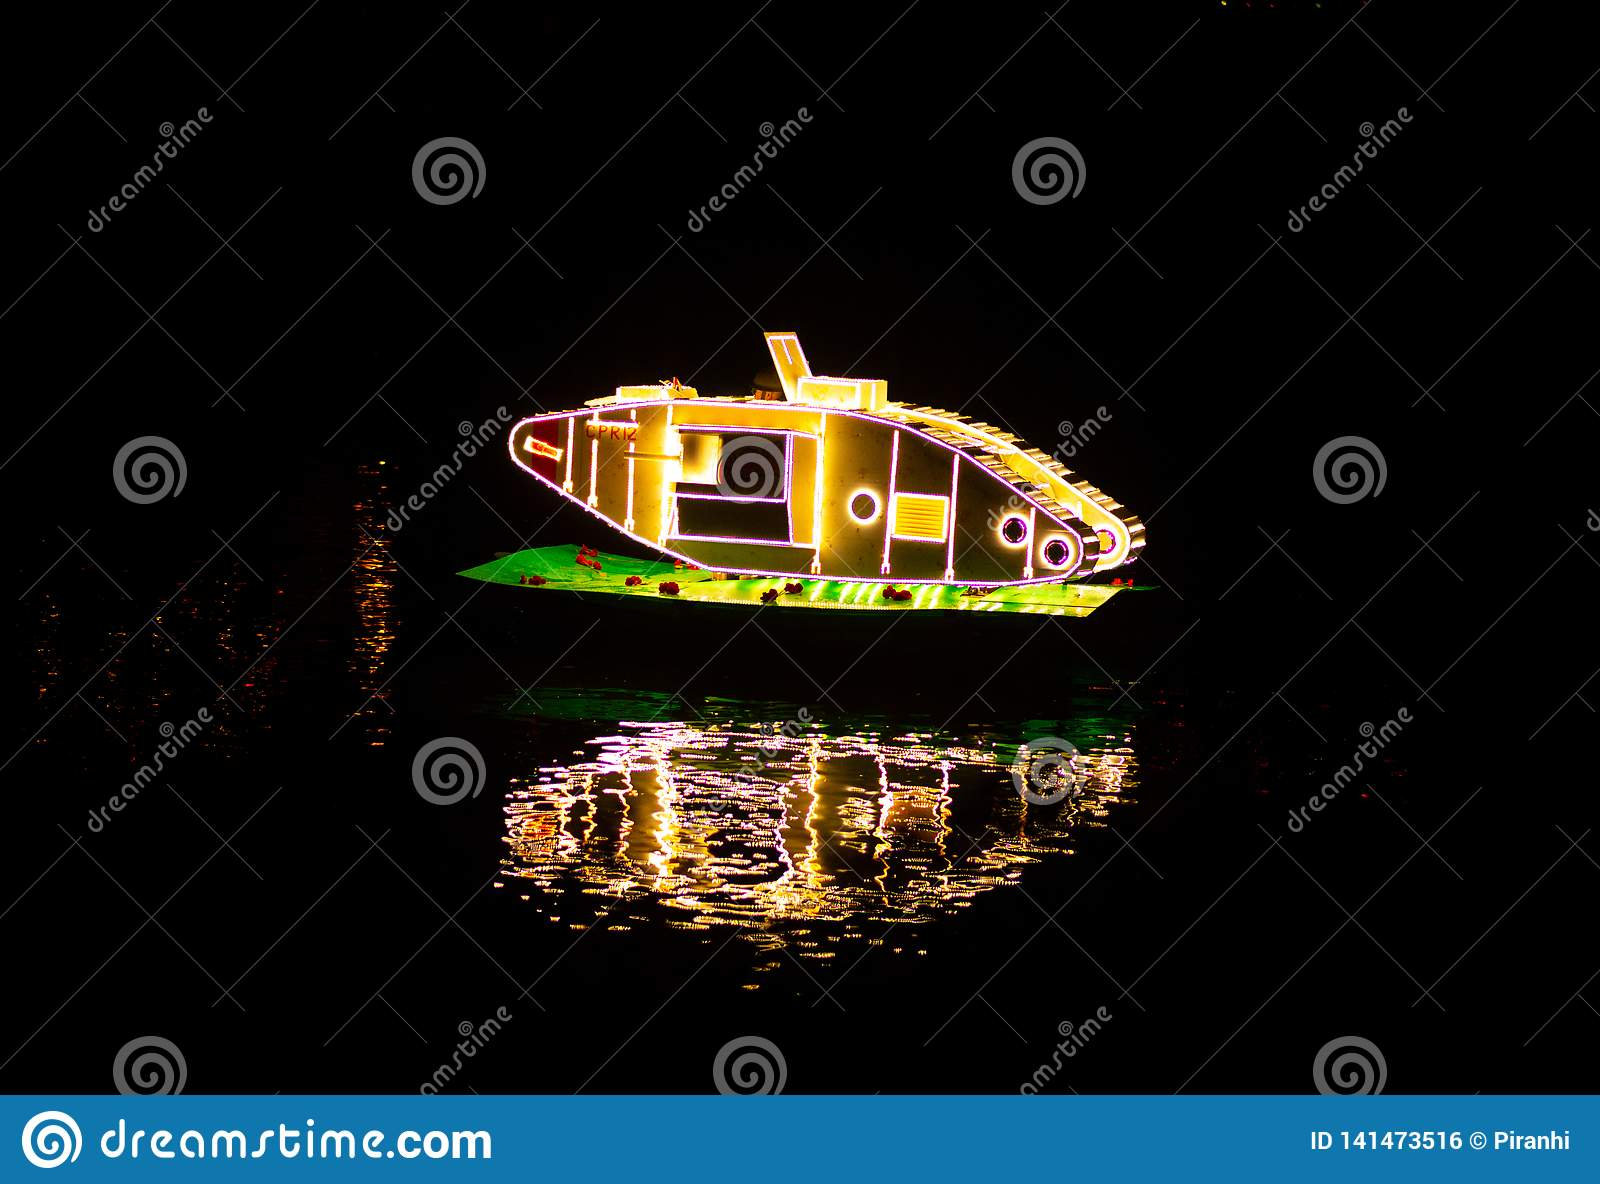 MATLOCK BATH, ENGLAND - OCTOBER 6TH, 2018: A bright tank floating on the river for the Matlock bath Illumination